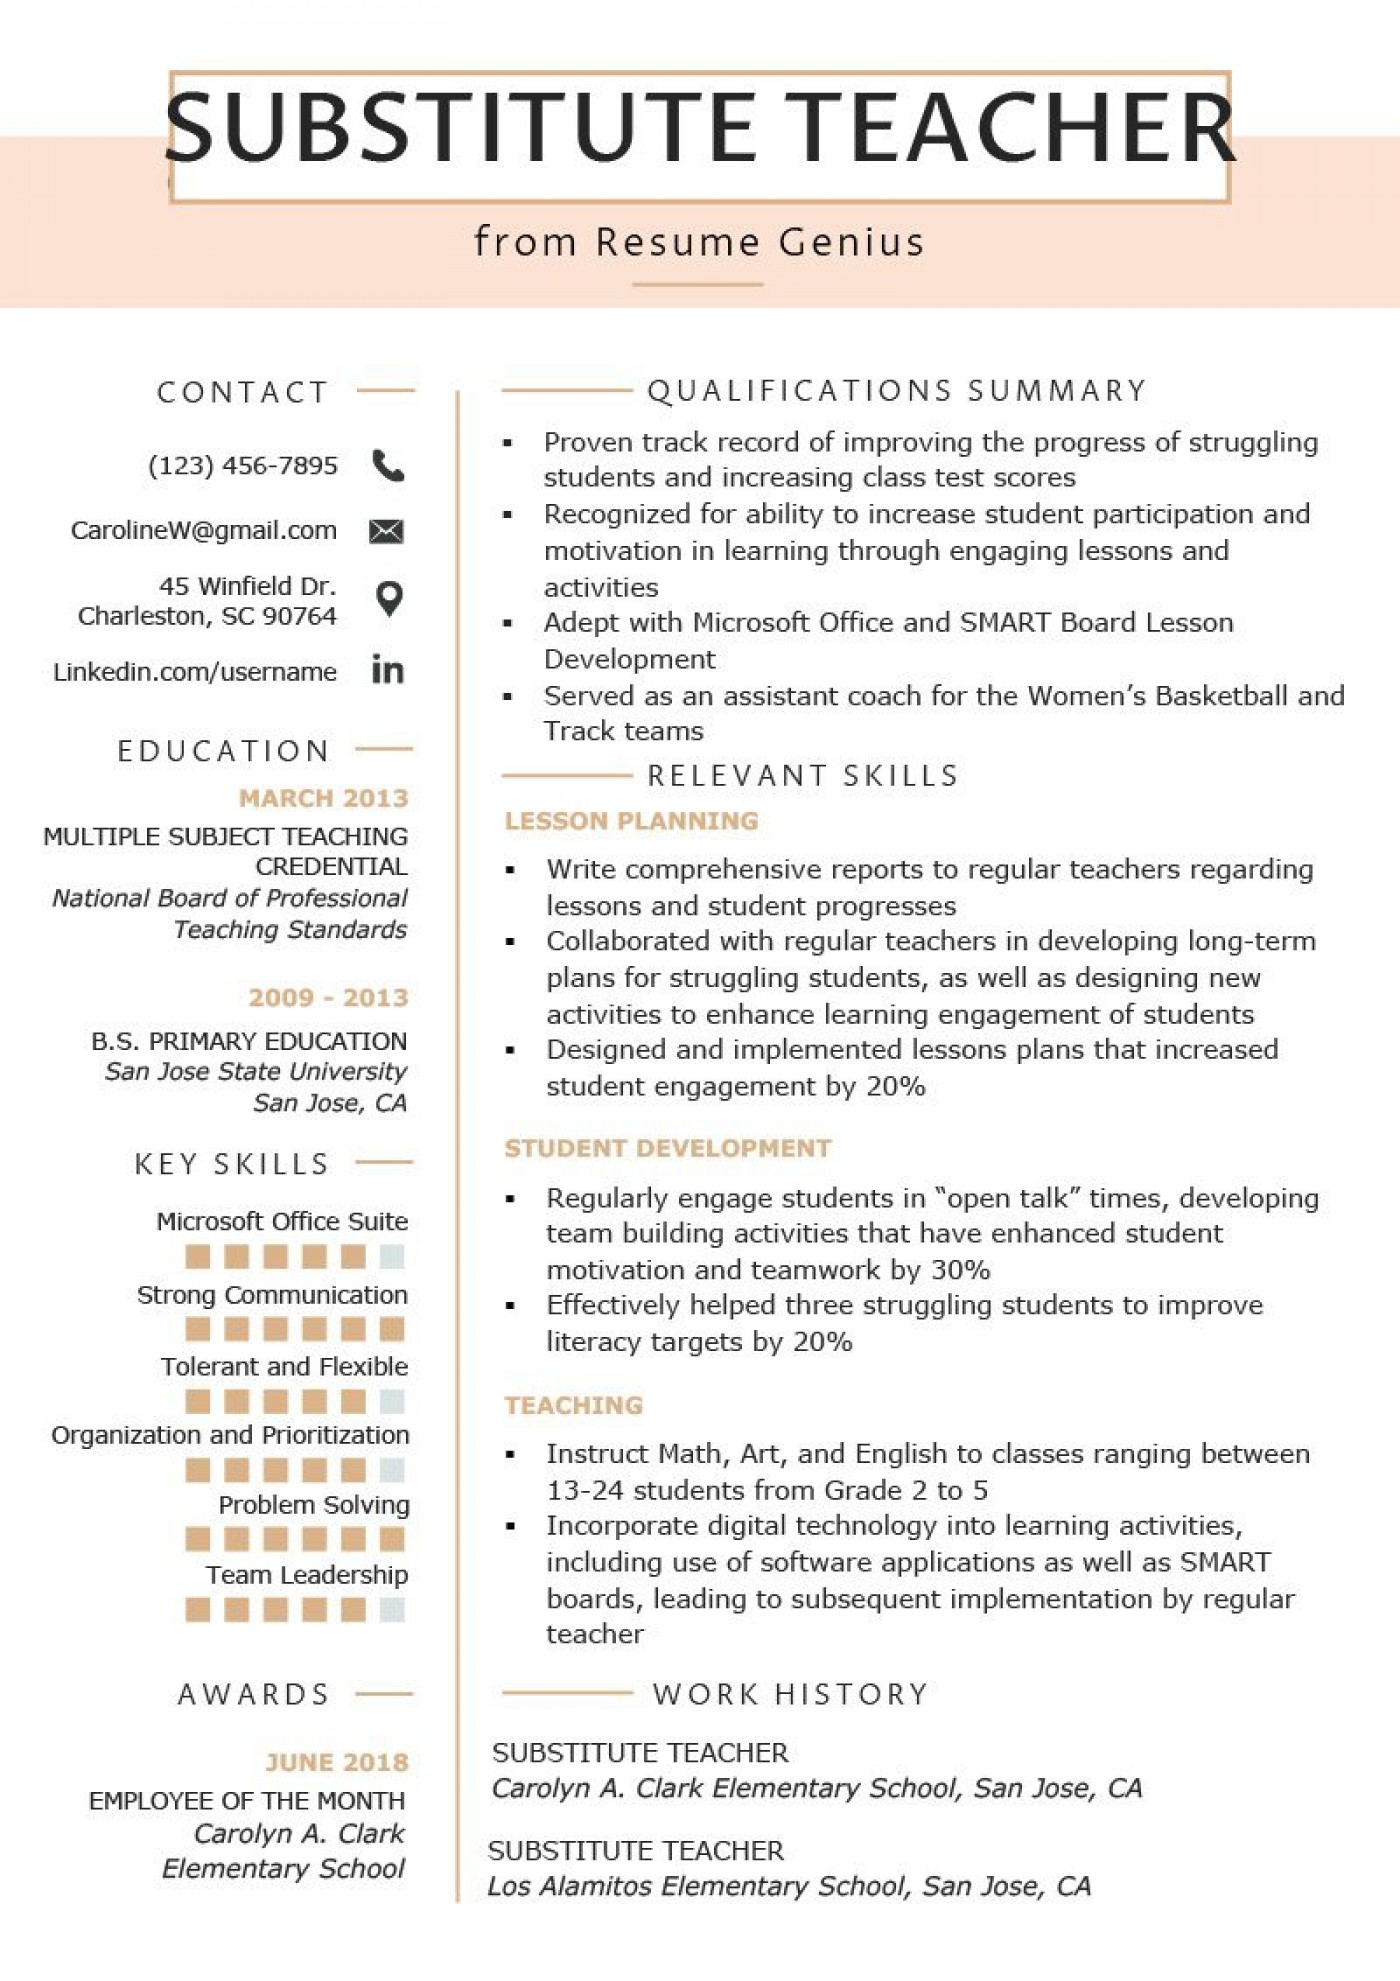 002 Incredible Resume Template For Teacher Picture  Free Download Australia Microsoft Word 20071400